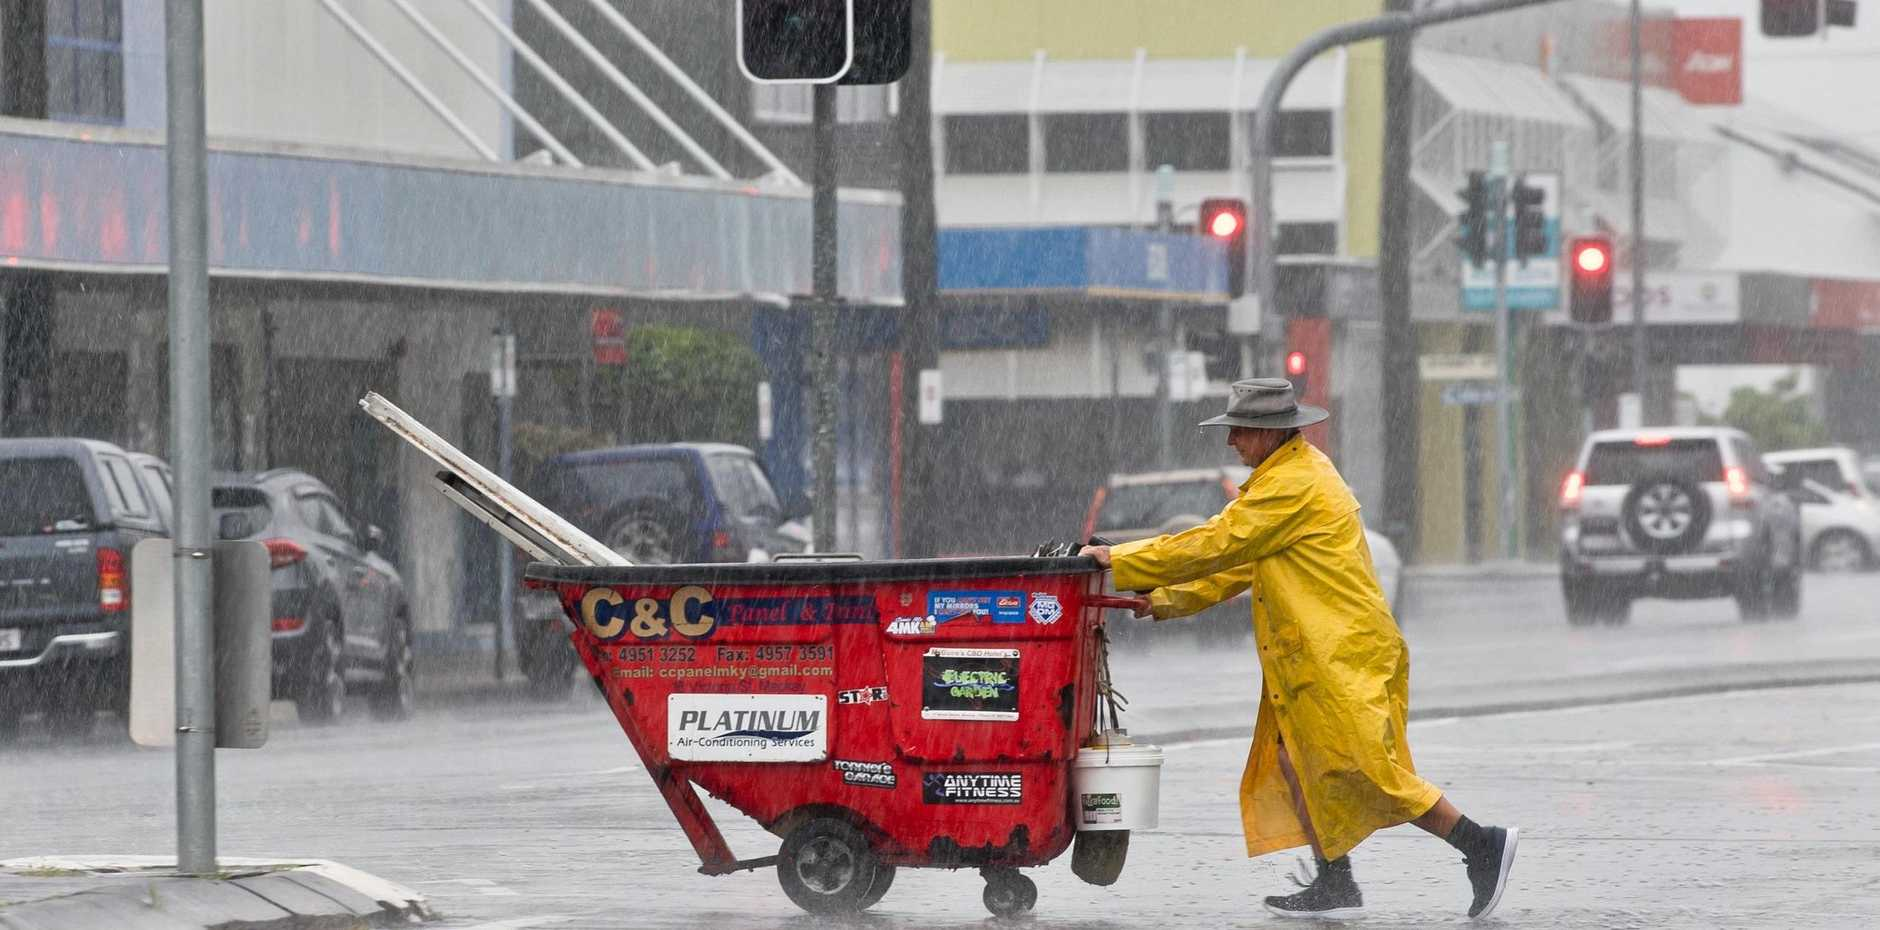 Ex-cyclone Penny has brought wind and rain to the Mackay region.